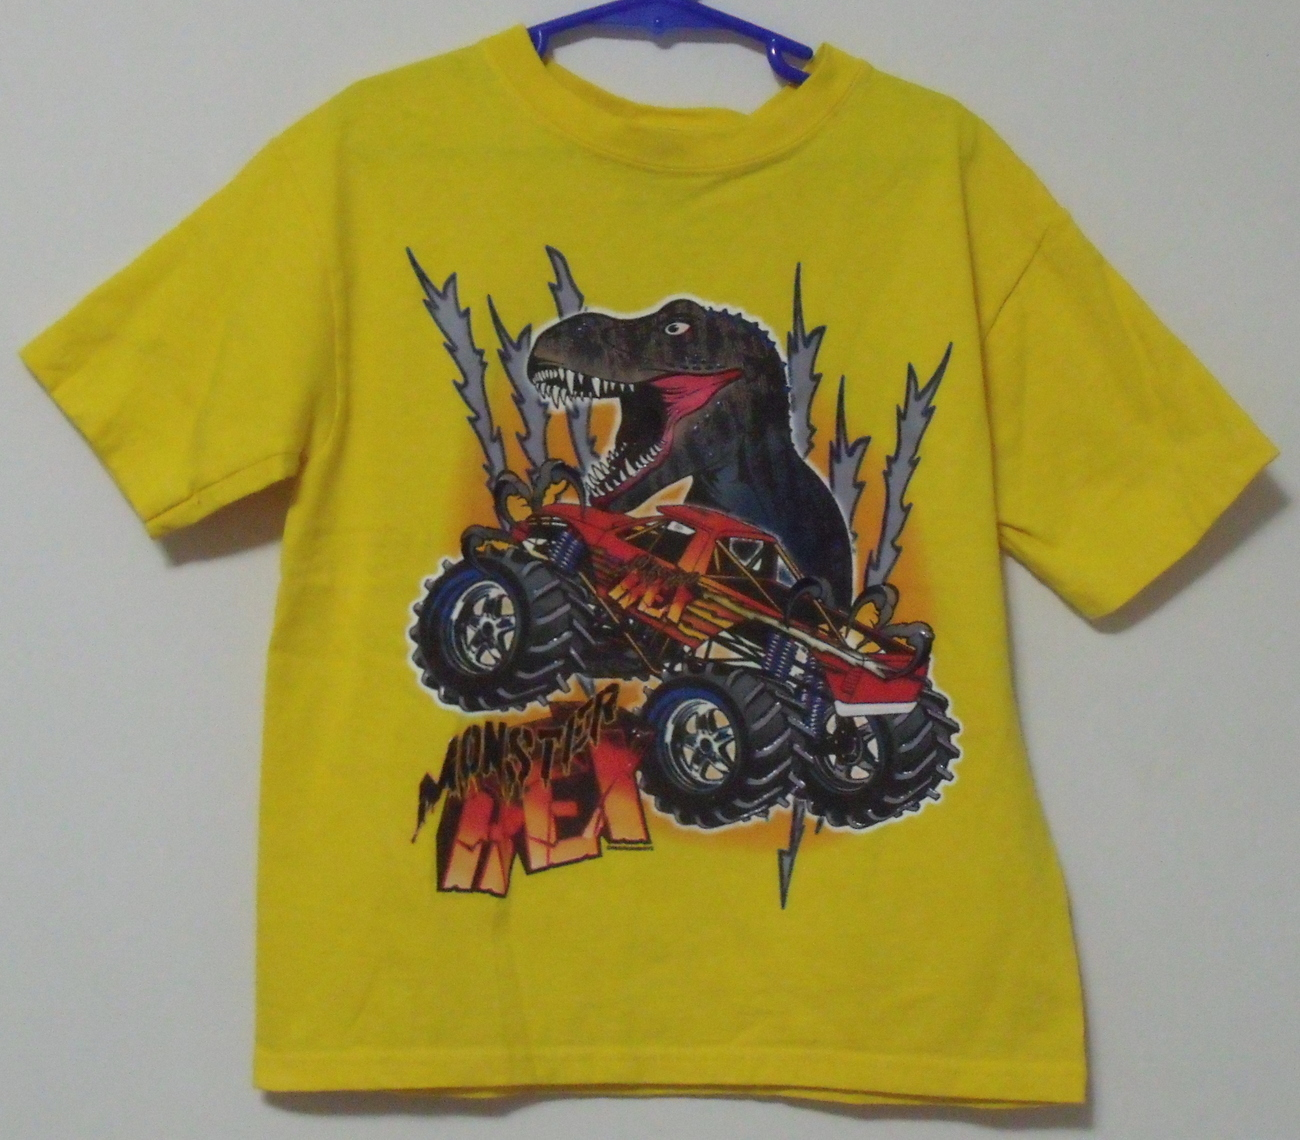 Primary image for Boys Rudeboyz Yellow T Rex Short Sleeve T Shirt Size 7